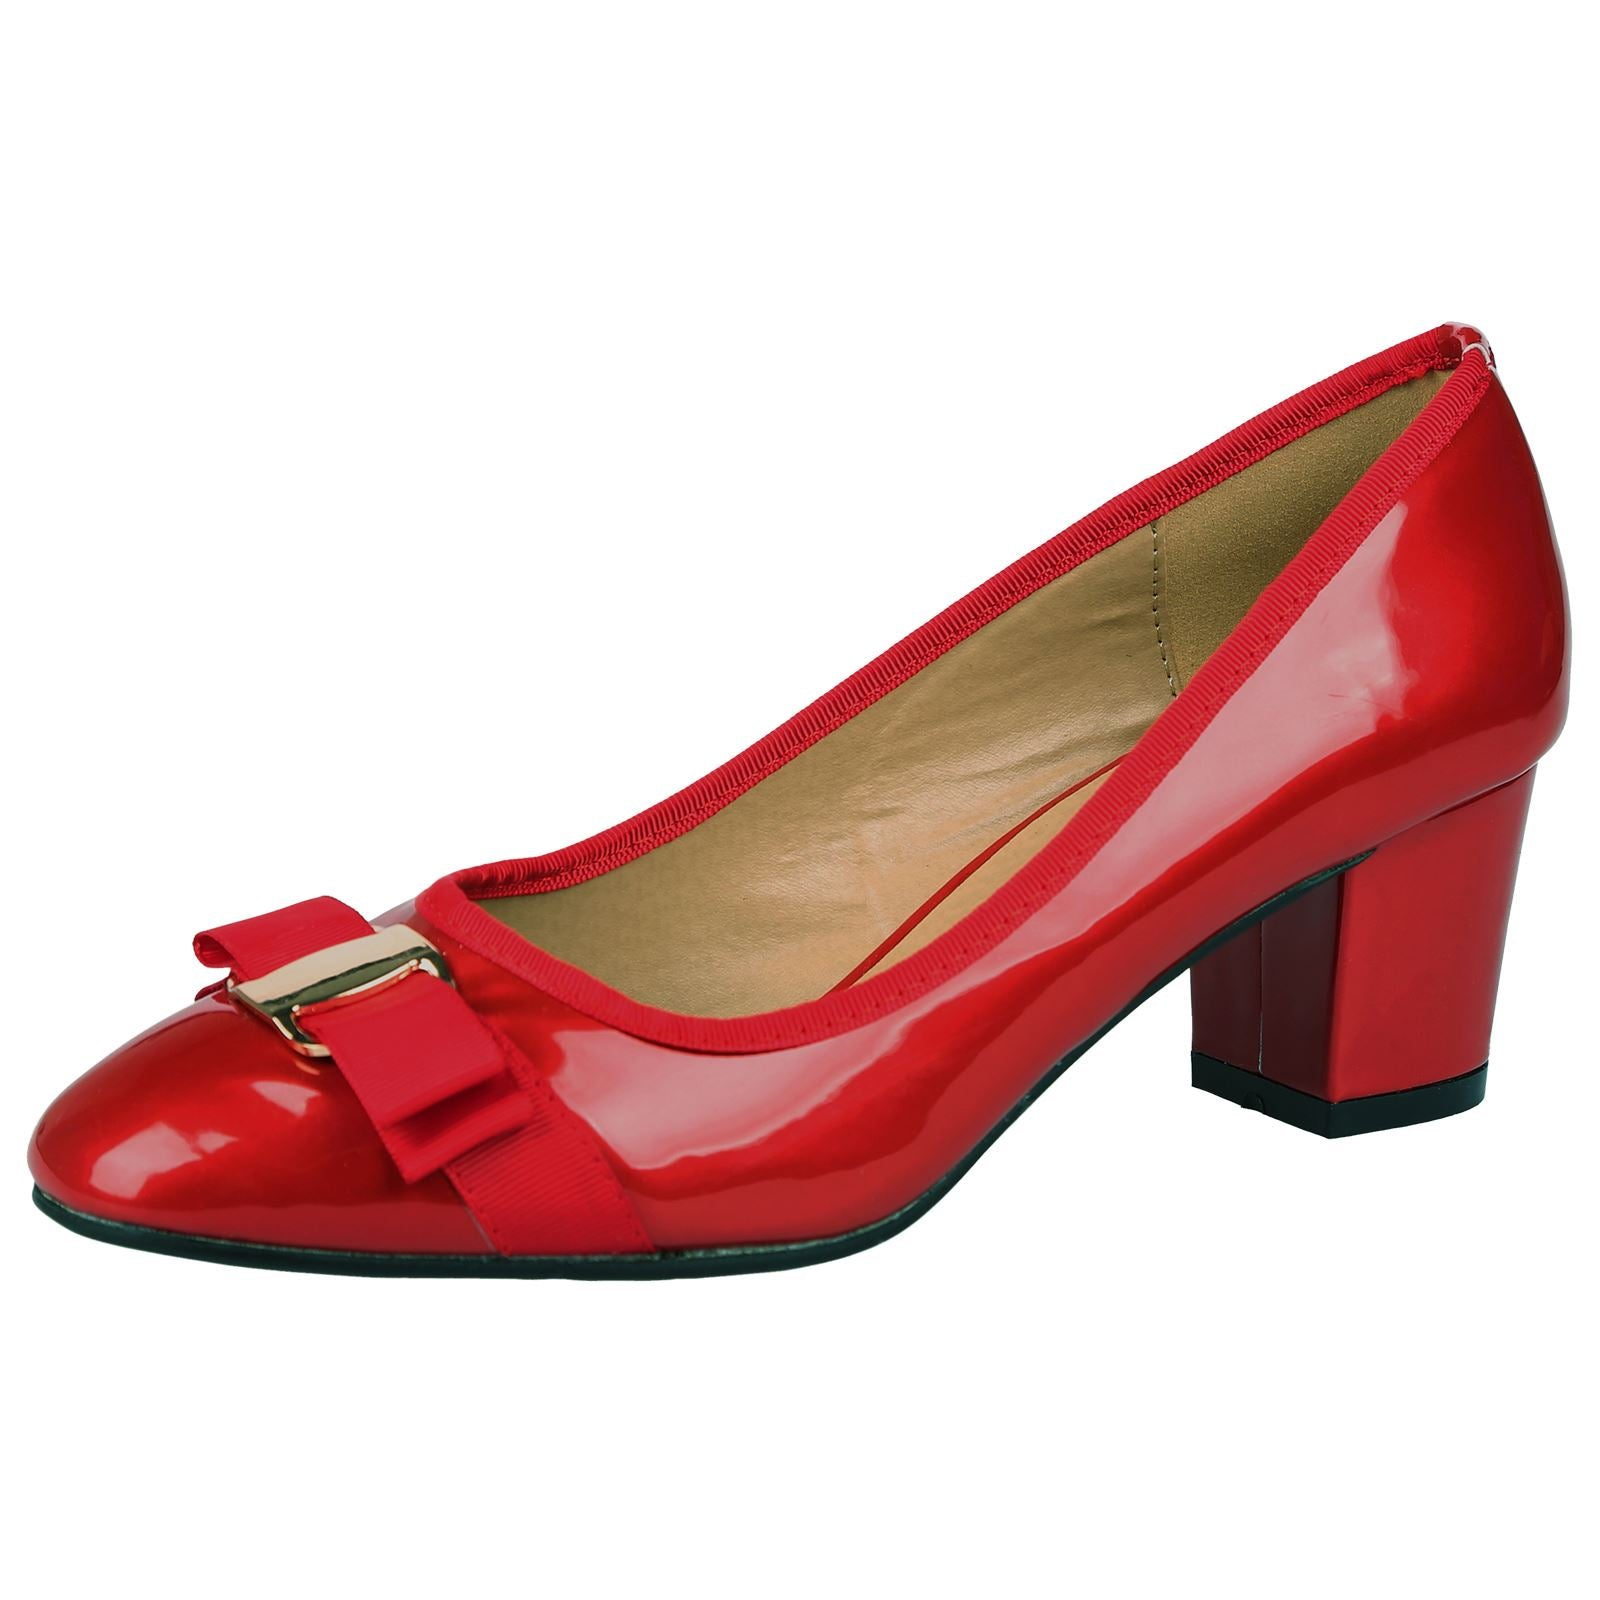 Cherie Bow Detail Low Heel Court Shoes in Red Patent